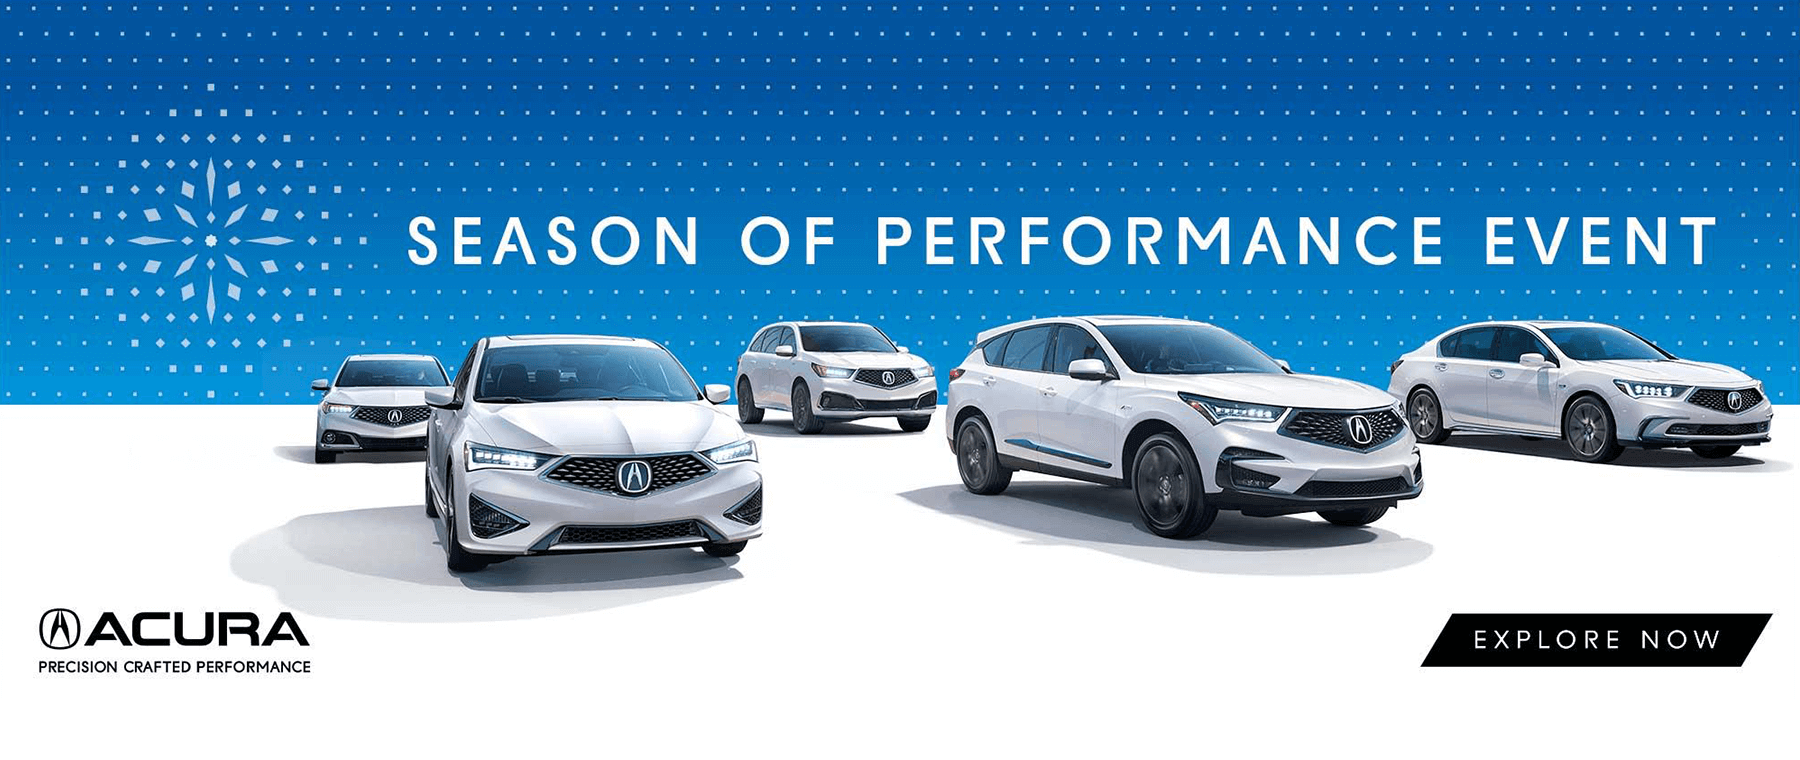 2018 Acura Season of Performance Event